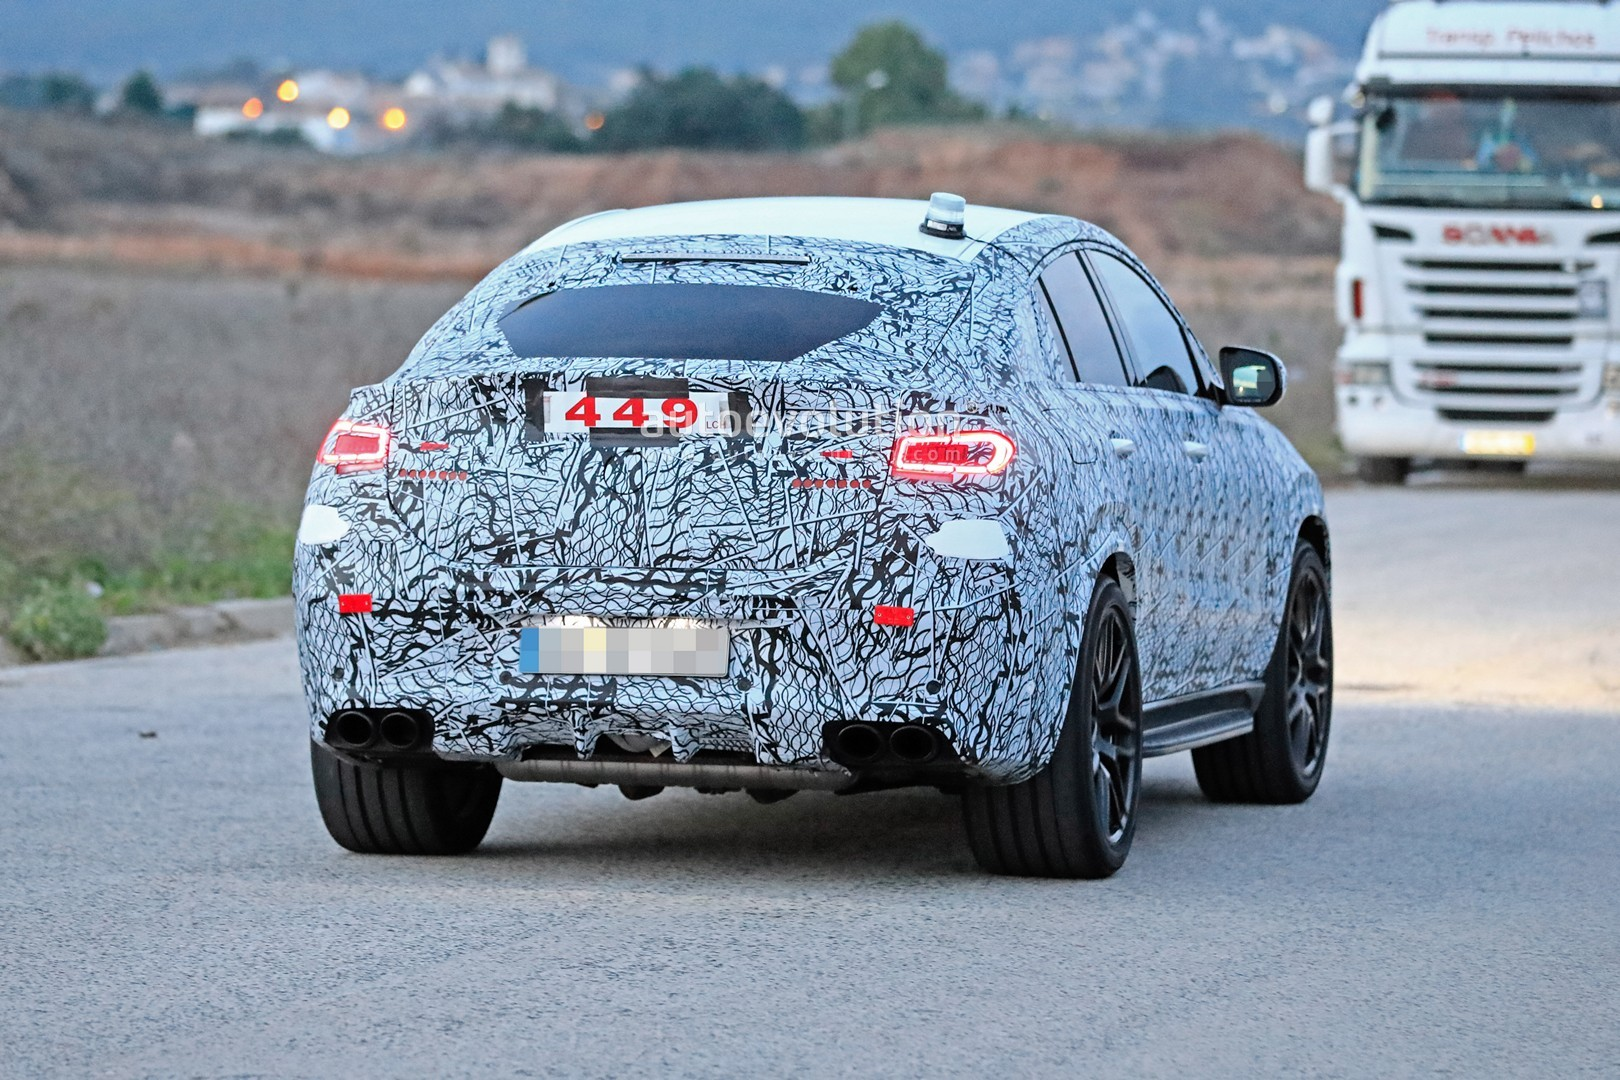 mercedes-a​mg-gle-53-​coupe-make​s-spyshot-​debut-with​-quad-exha​ust-tips_2